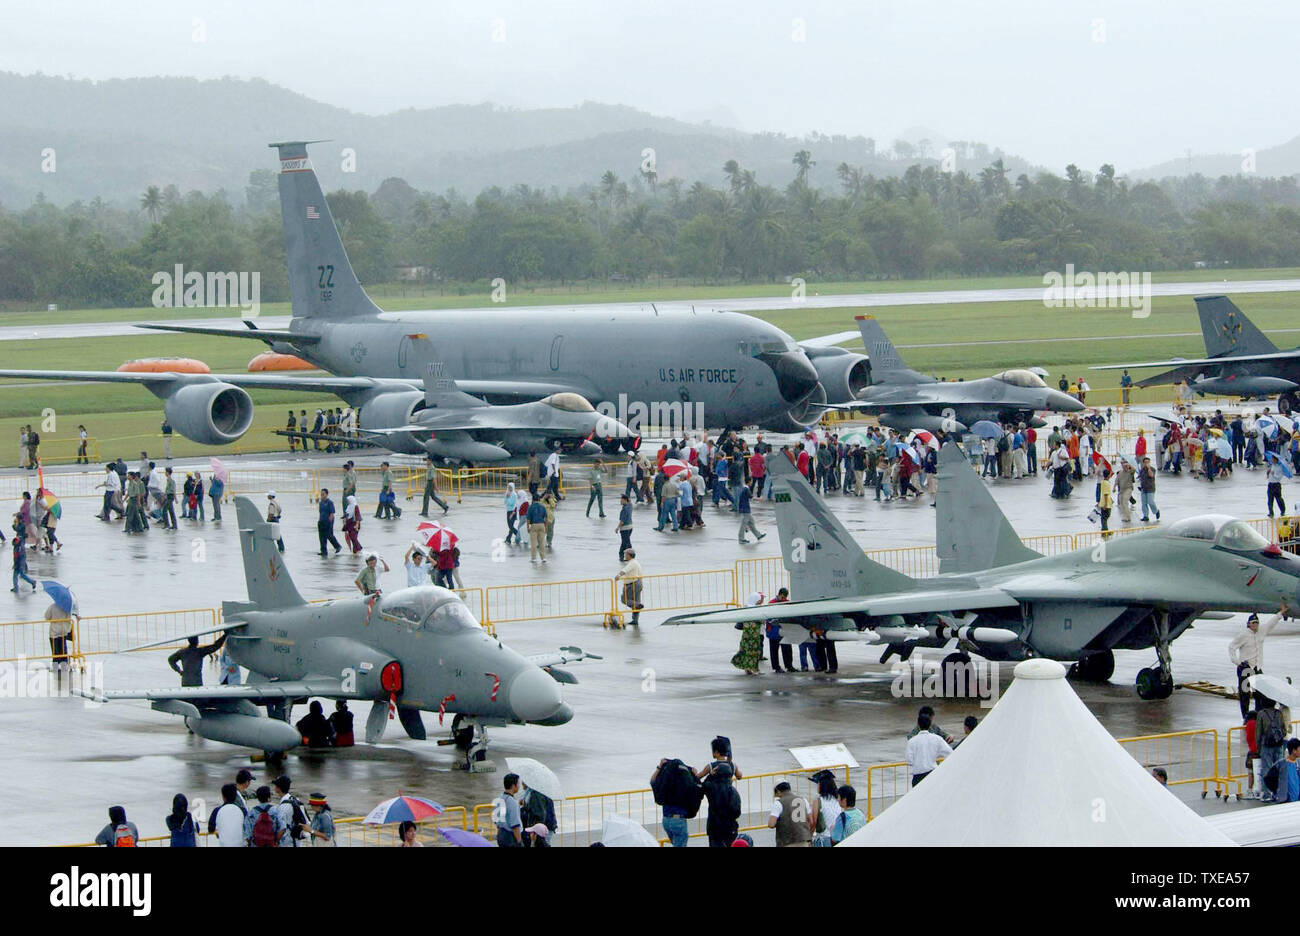 A KC-135 tanker from the 909th Air Refueling Squadron, Kadena Air Base, Japan, and F-16 fighter aircraft from the 35th Fighter Squadron, Misawa Air Base, Japan, is on display on the tarmac during the Langkawi International Maritime and Aerospace exhibition 2003 (LIMA 03) here.  LIMA 03 is one of the premier defense trade show in the world that features over 800 local and international companies and military delegations from about 40 nations that offer state-of-the art aerospace and maritime products. More than 100 aircraft and 80 vessels are on display during the six-day event.     (UPI/AFIE/V - Stock Image